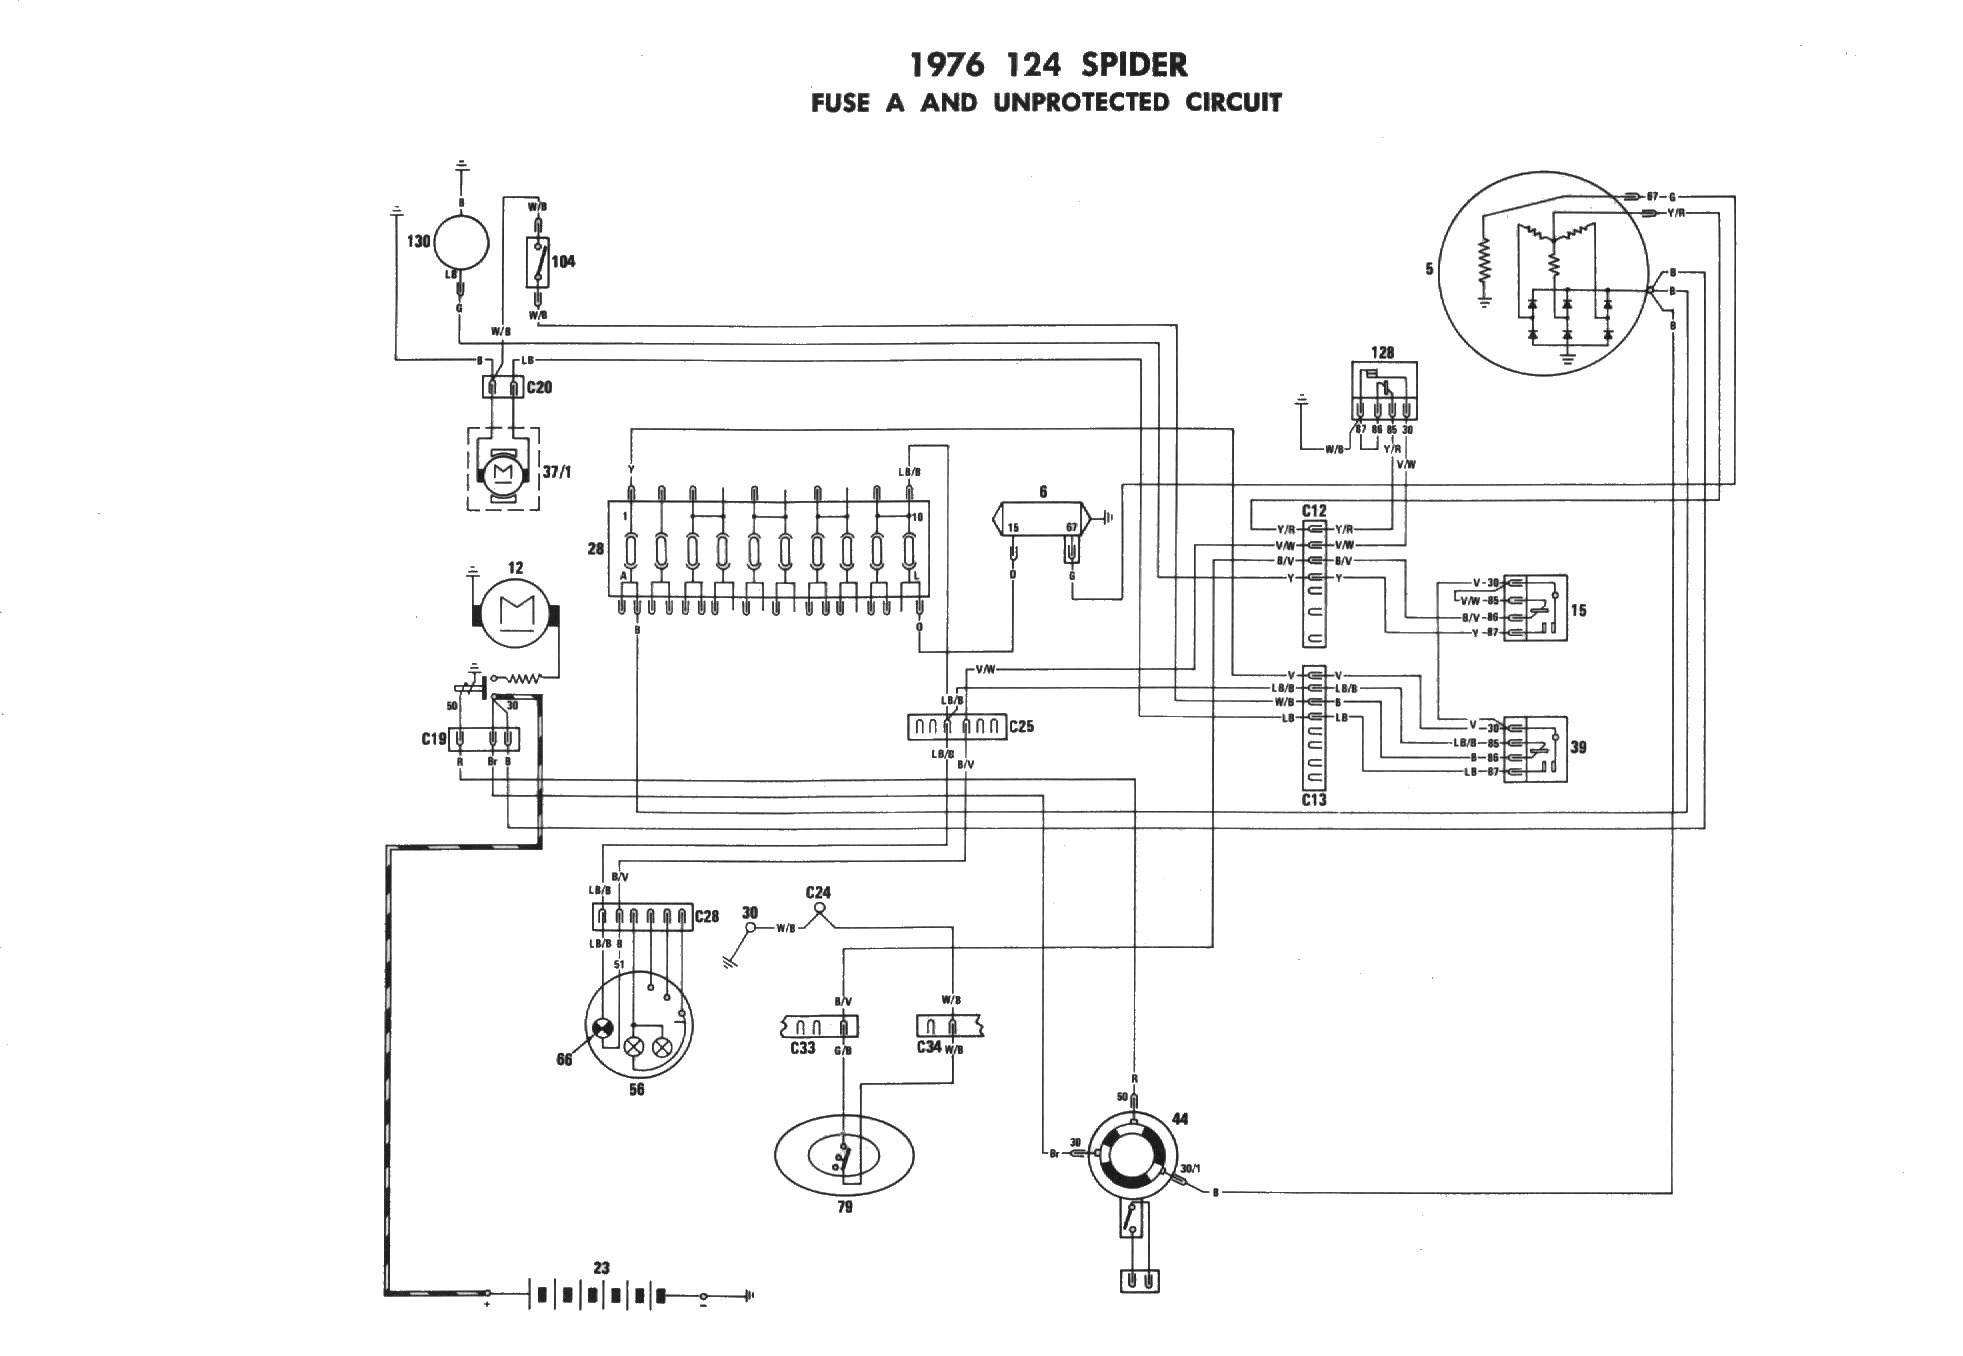 fiat spider wiring diagram plot activity 124 spidersweb nl on repeated request